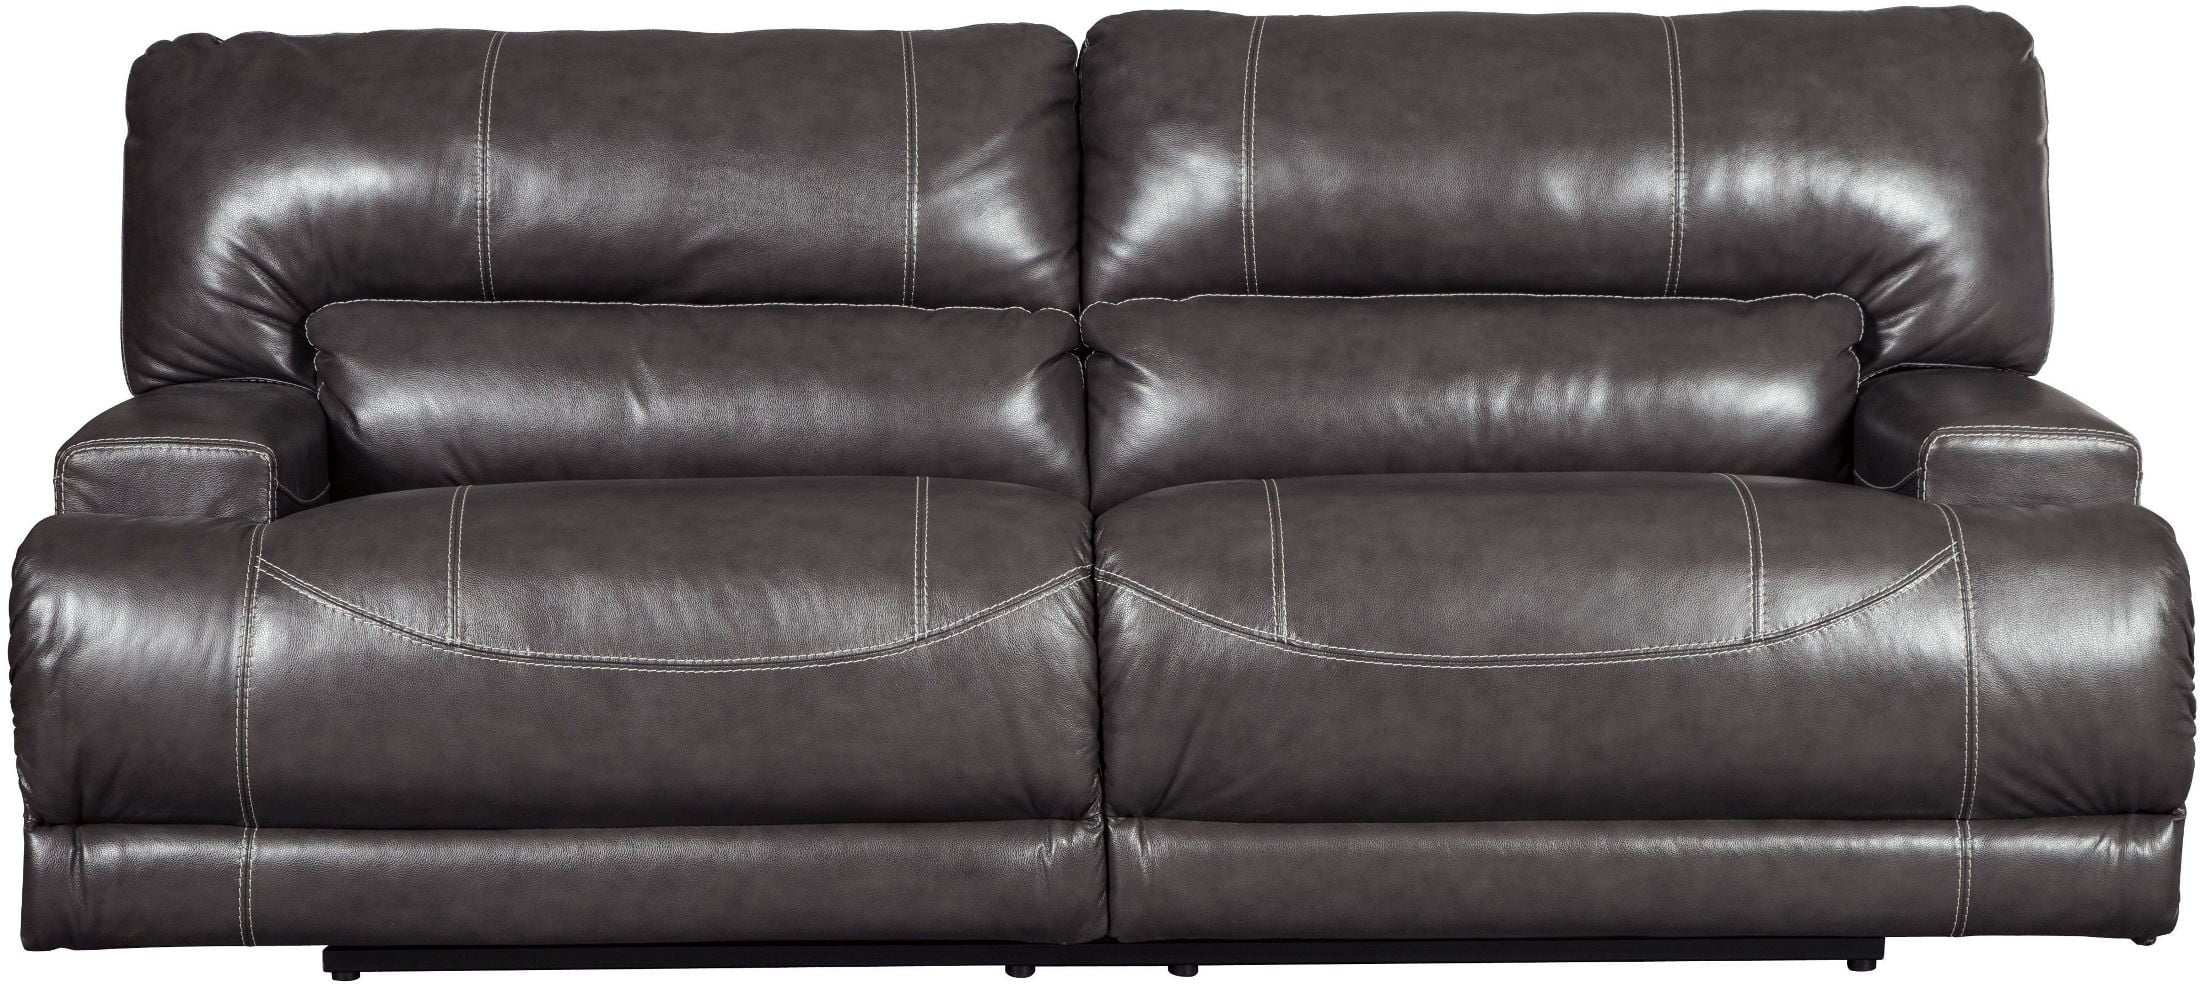 Pleasing Mccaskill Gray 2 Seat Power Reclining Sofa Pabps2019 Chair Design Images Pabps2019Com